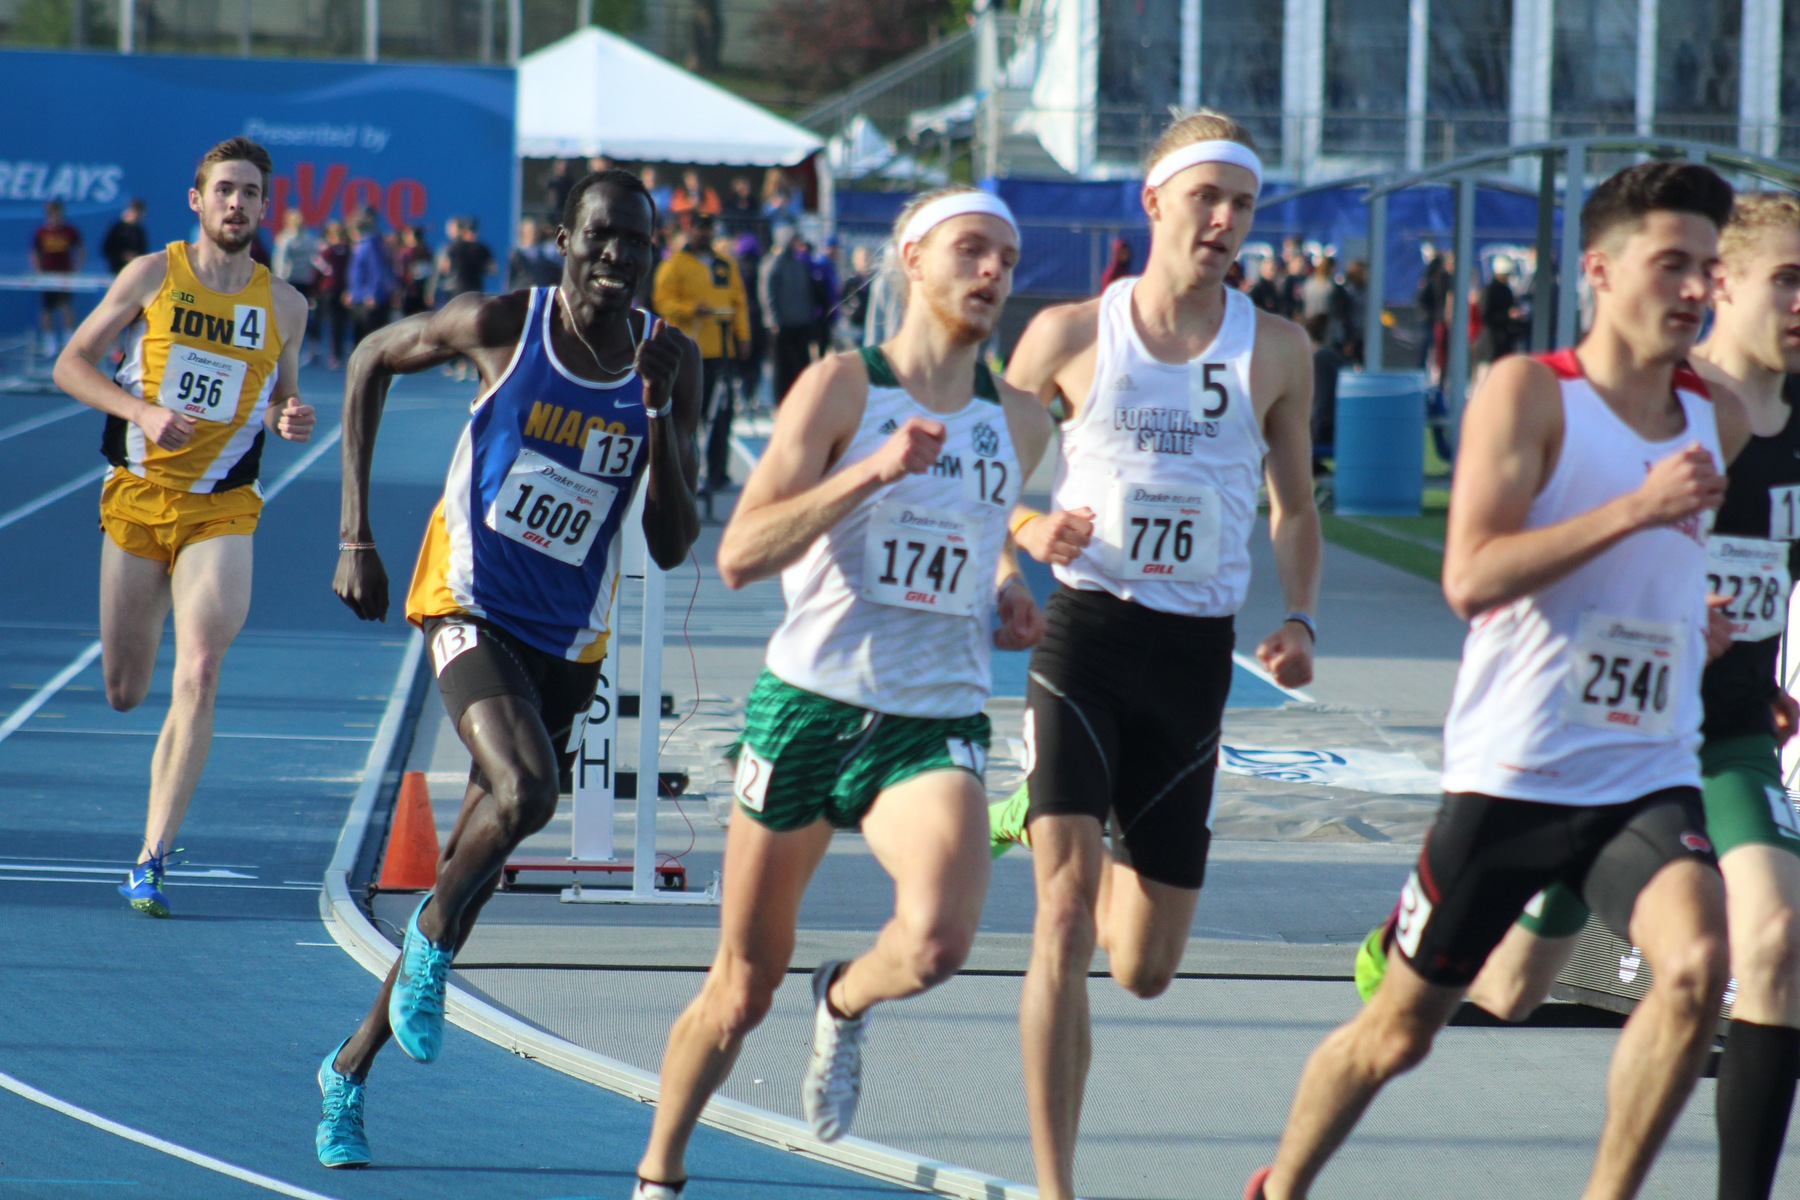 Wal Khat runs to a fourth place finish Thursday night in the 800 at the Drake Relays.